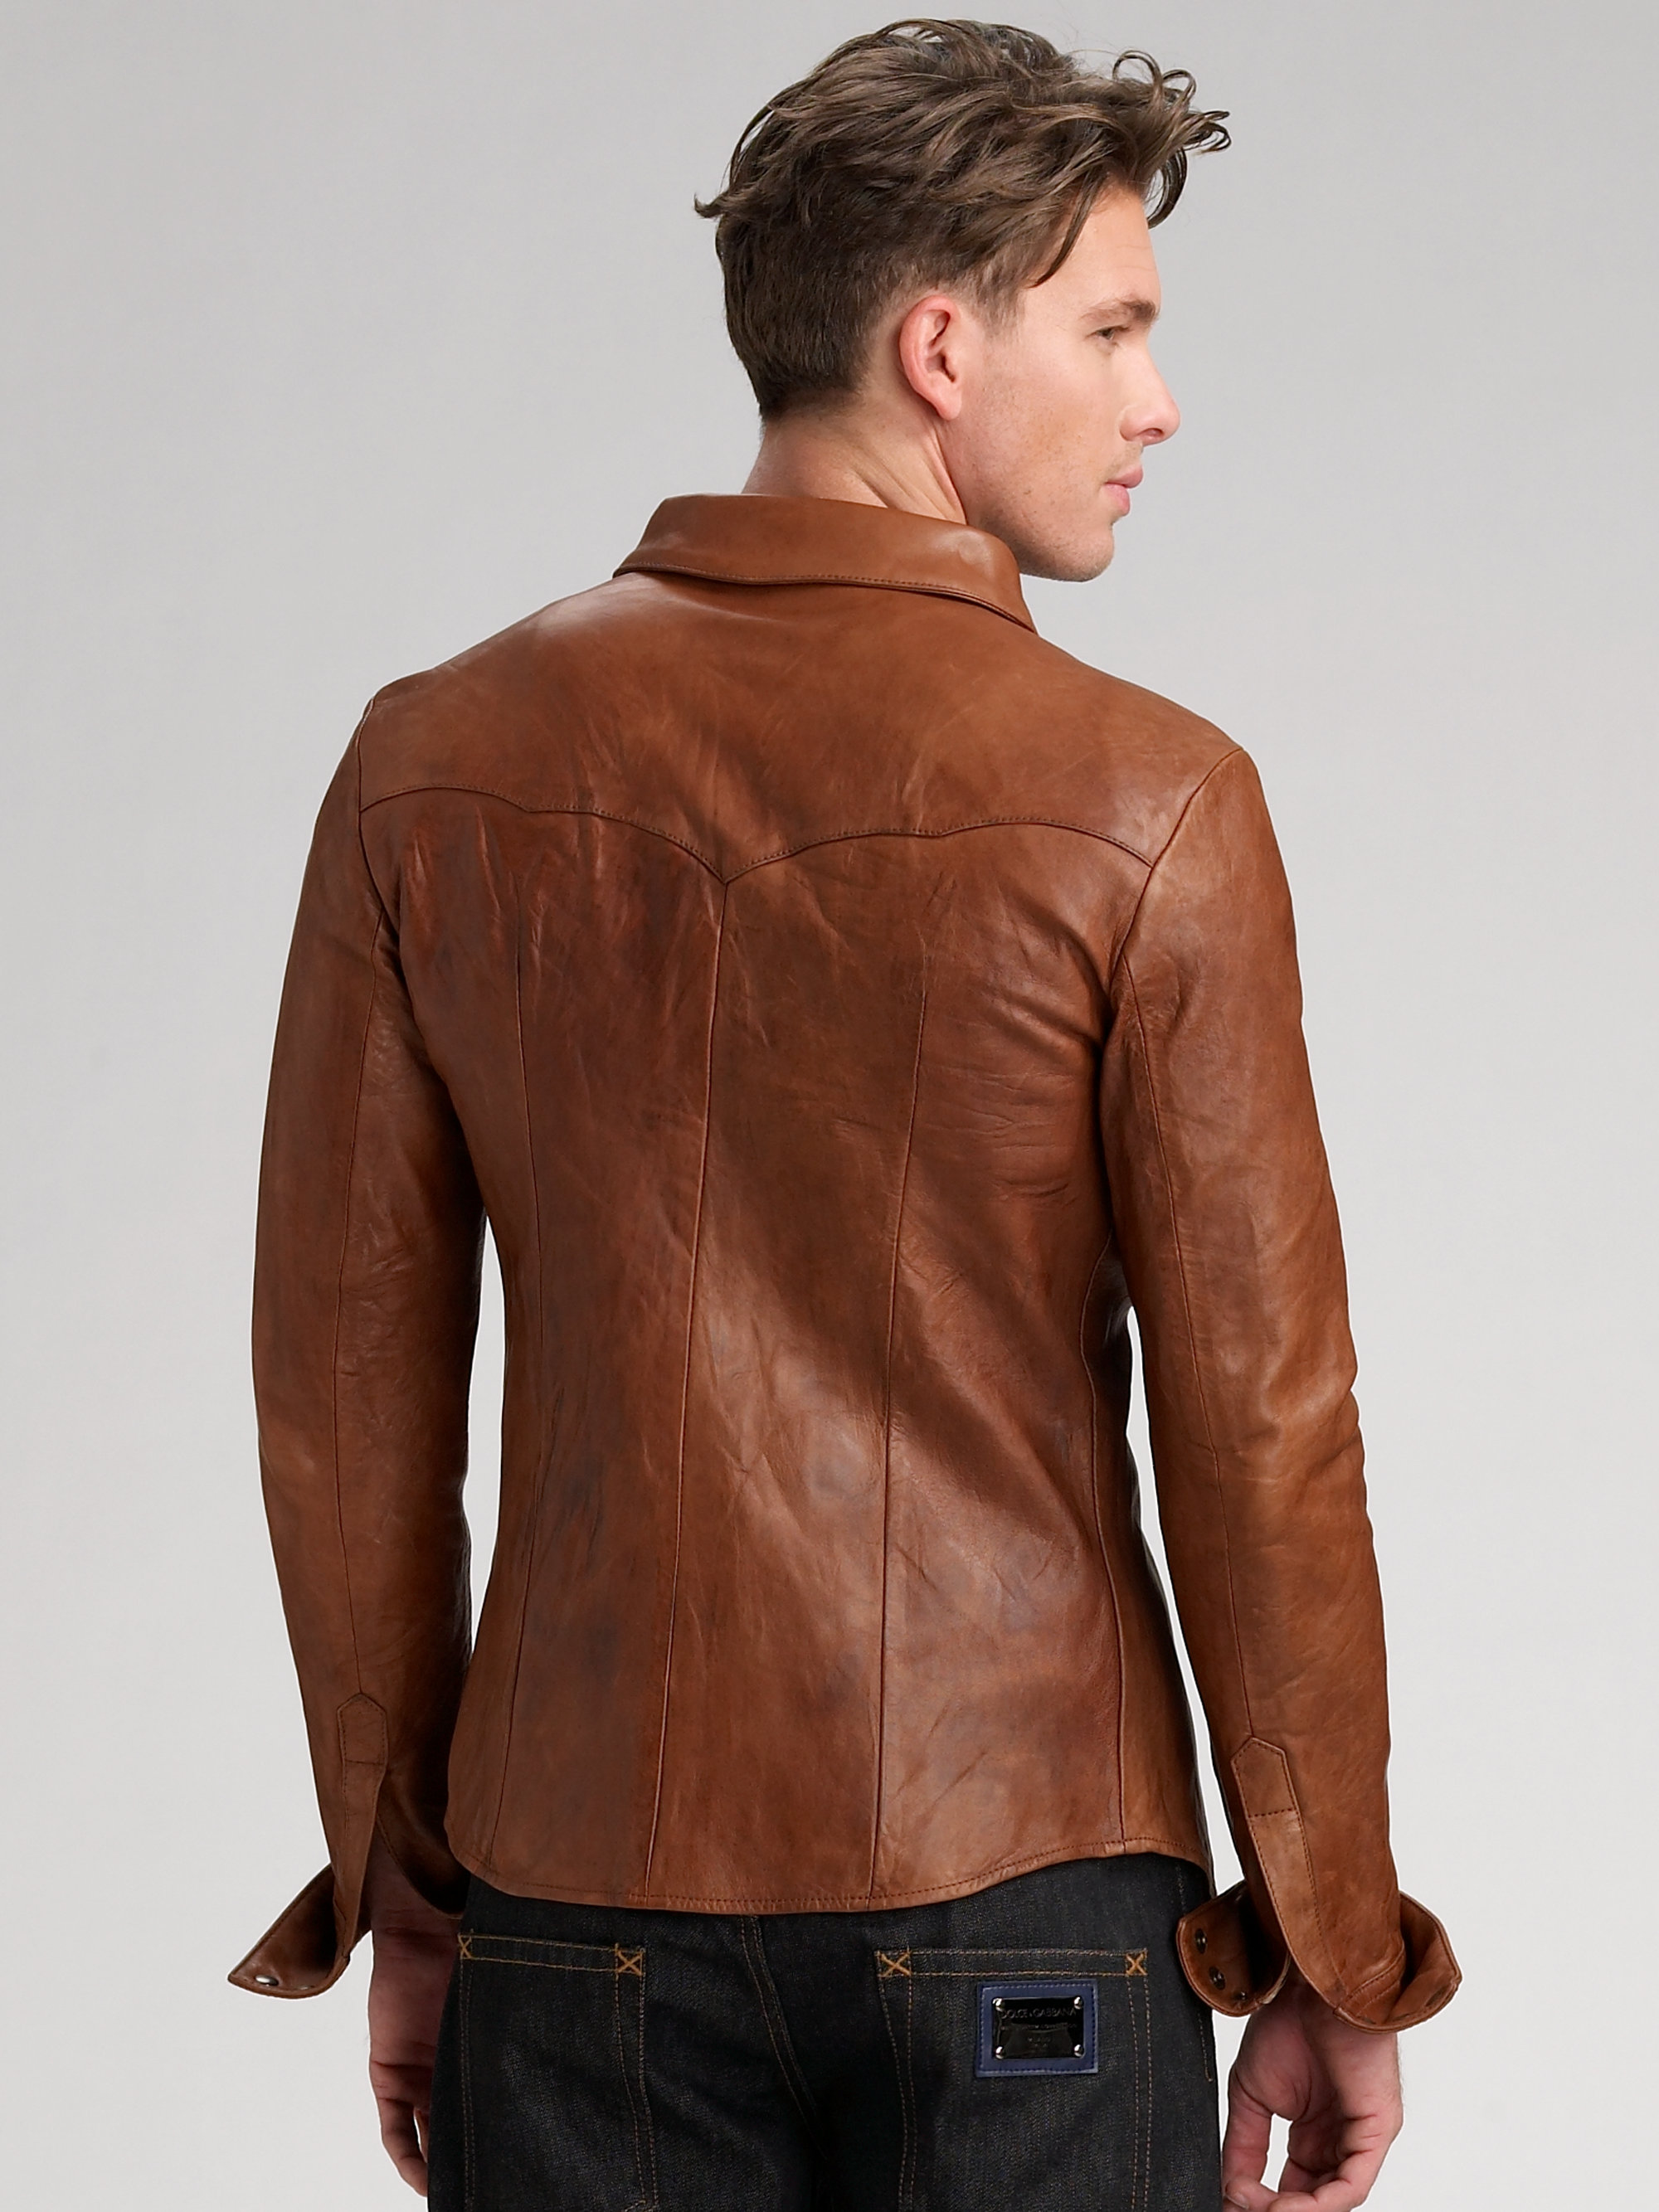 Leather Men's Clothing: shopnow-bqimqrqk.tk - Your Online Men's Clothing Store! Get 5% in rewards with Club O! Coupon Activated! Skip to main content FREE Shipping & Easy Returns* Search. Earn Rewards with Overstock. Men's Distressed Brown Leather Classic Aviator Jacket. 1 Review.